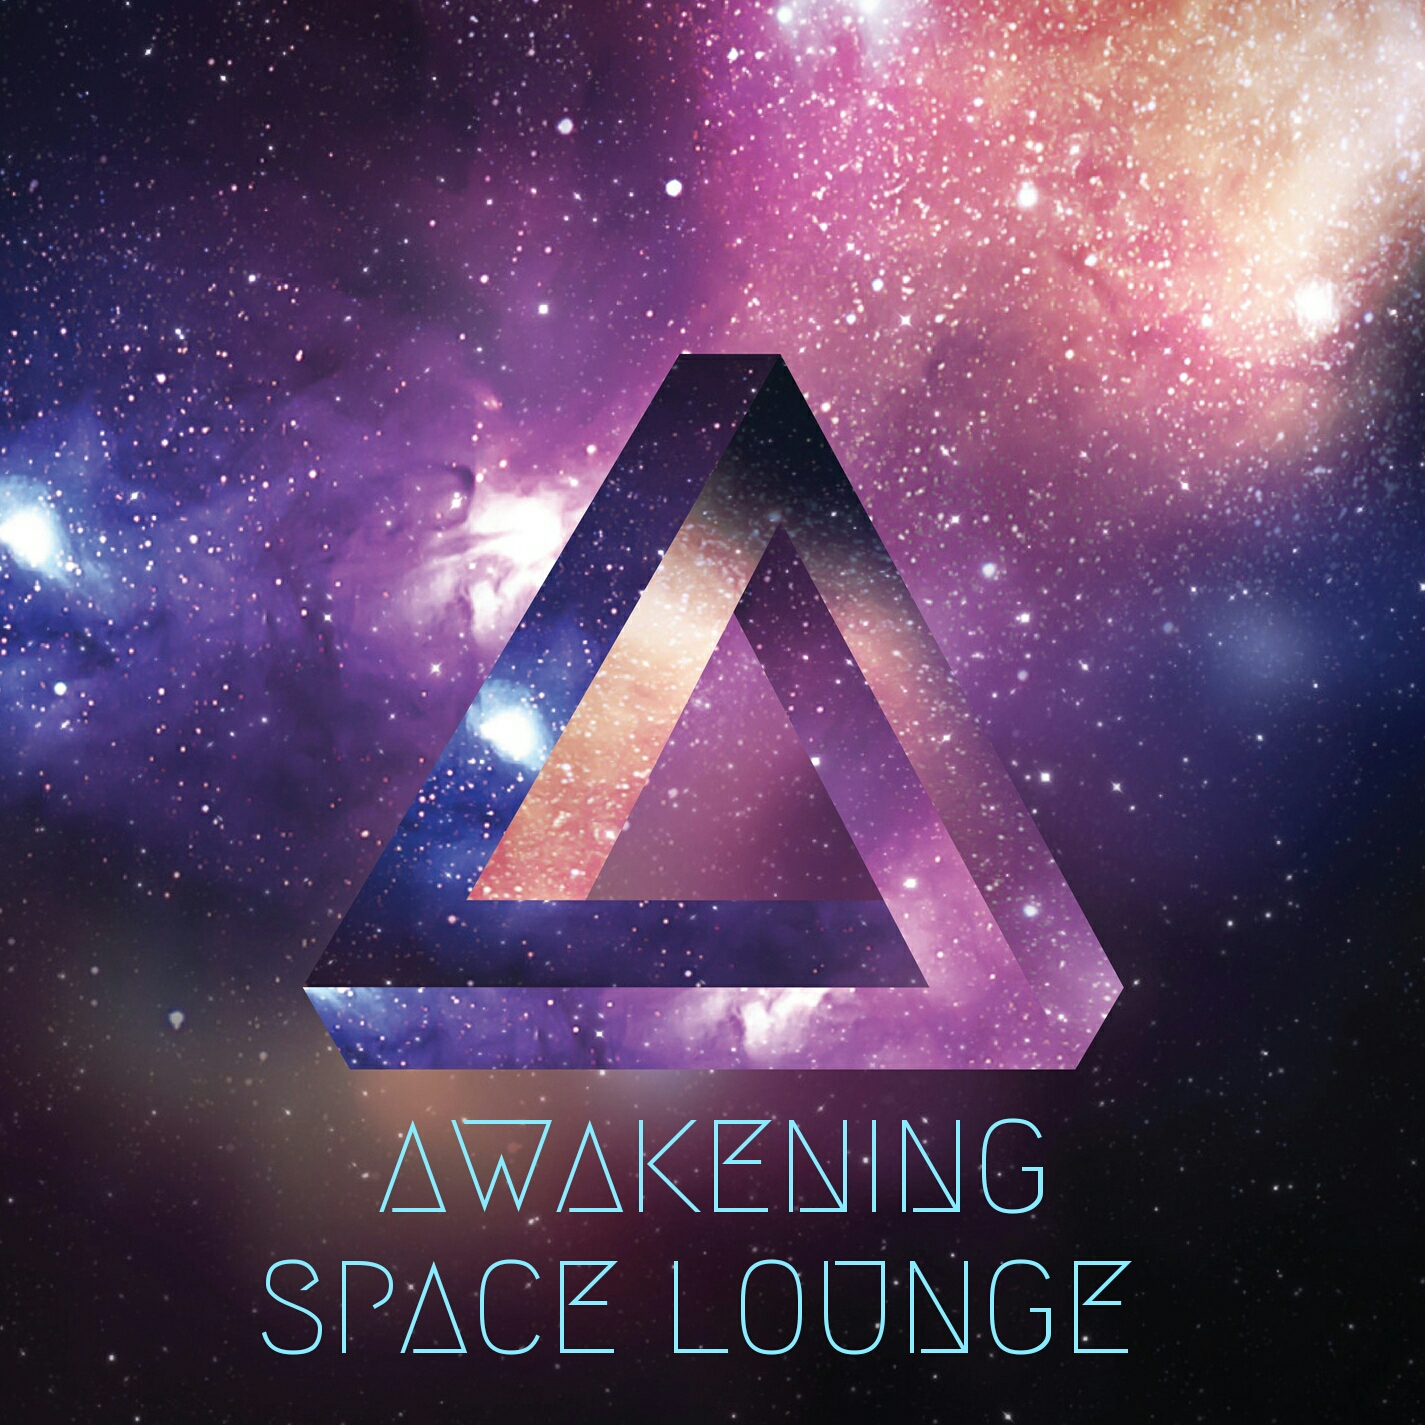 Awakening Space Lounge Chillout Mp3 Music Download